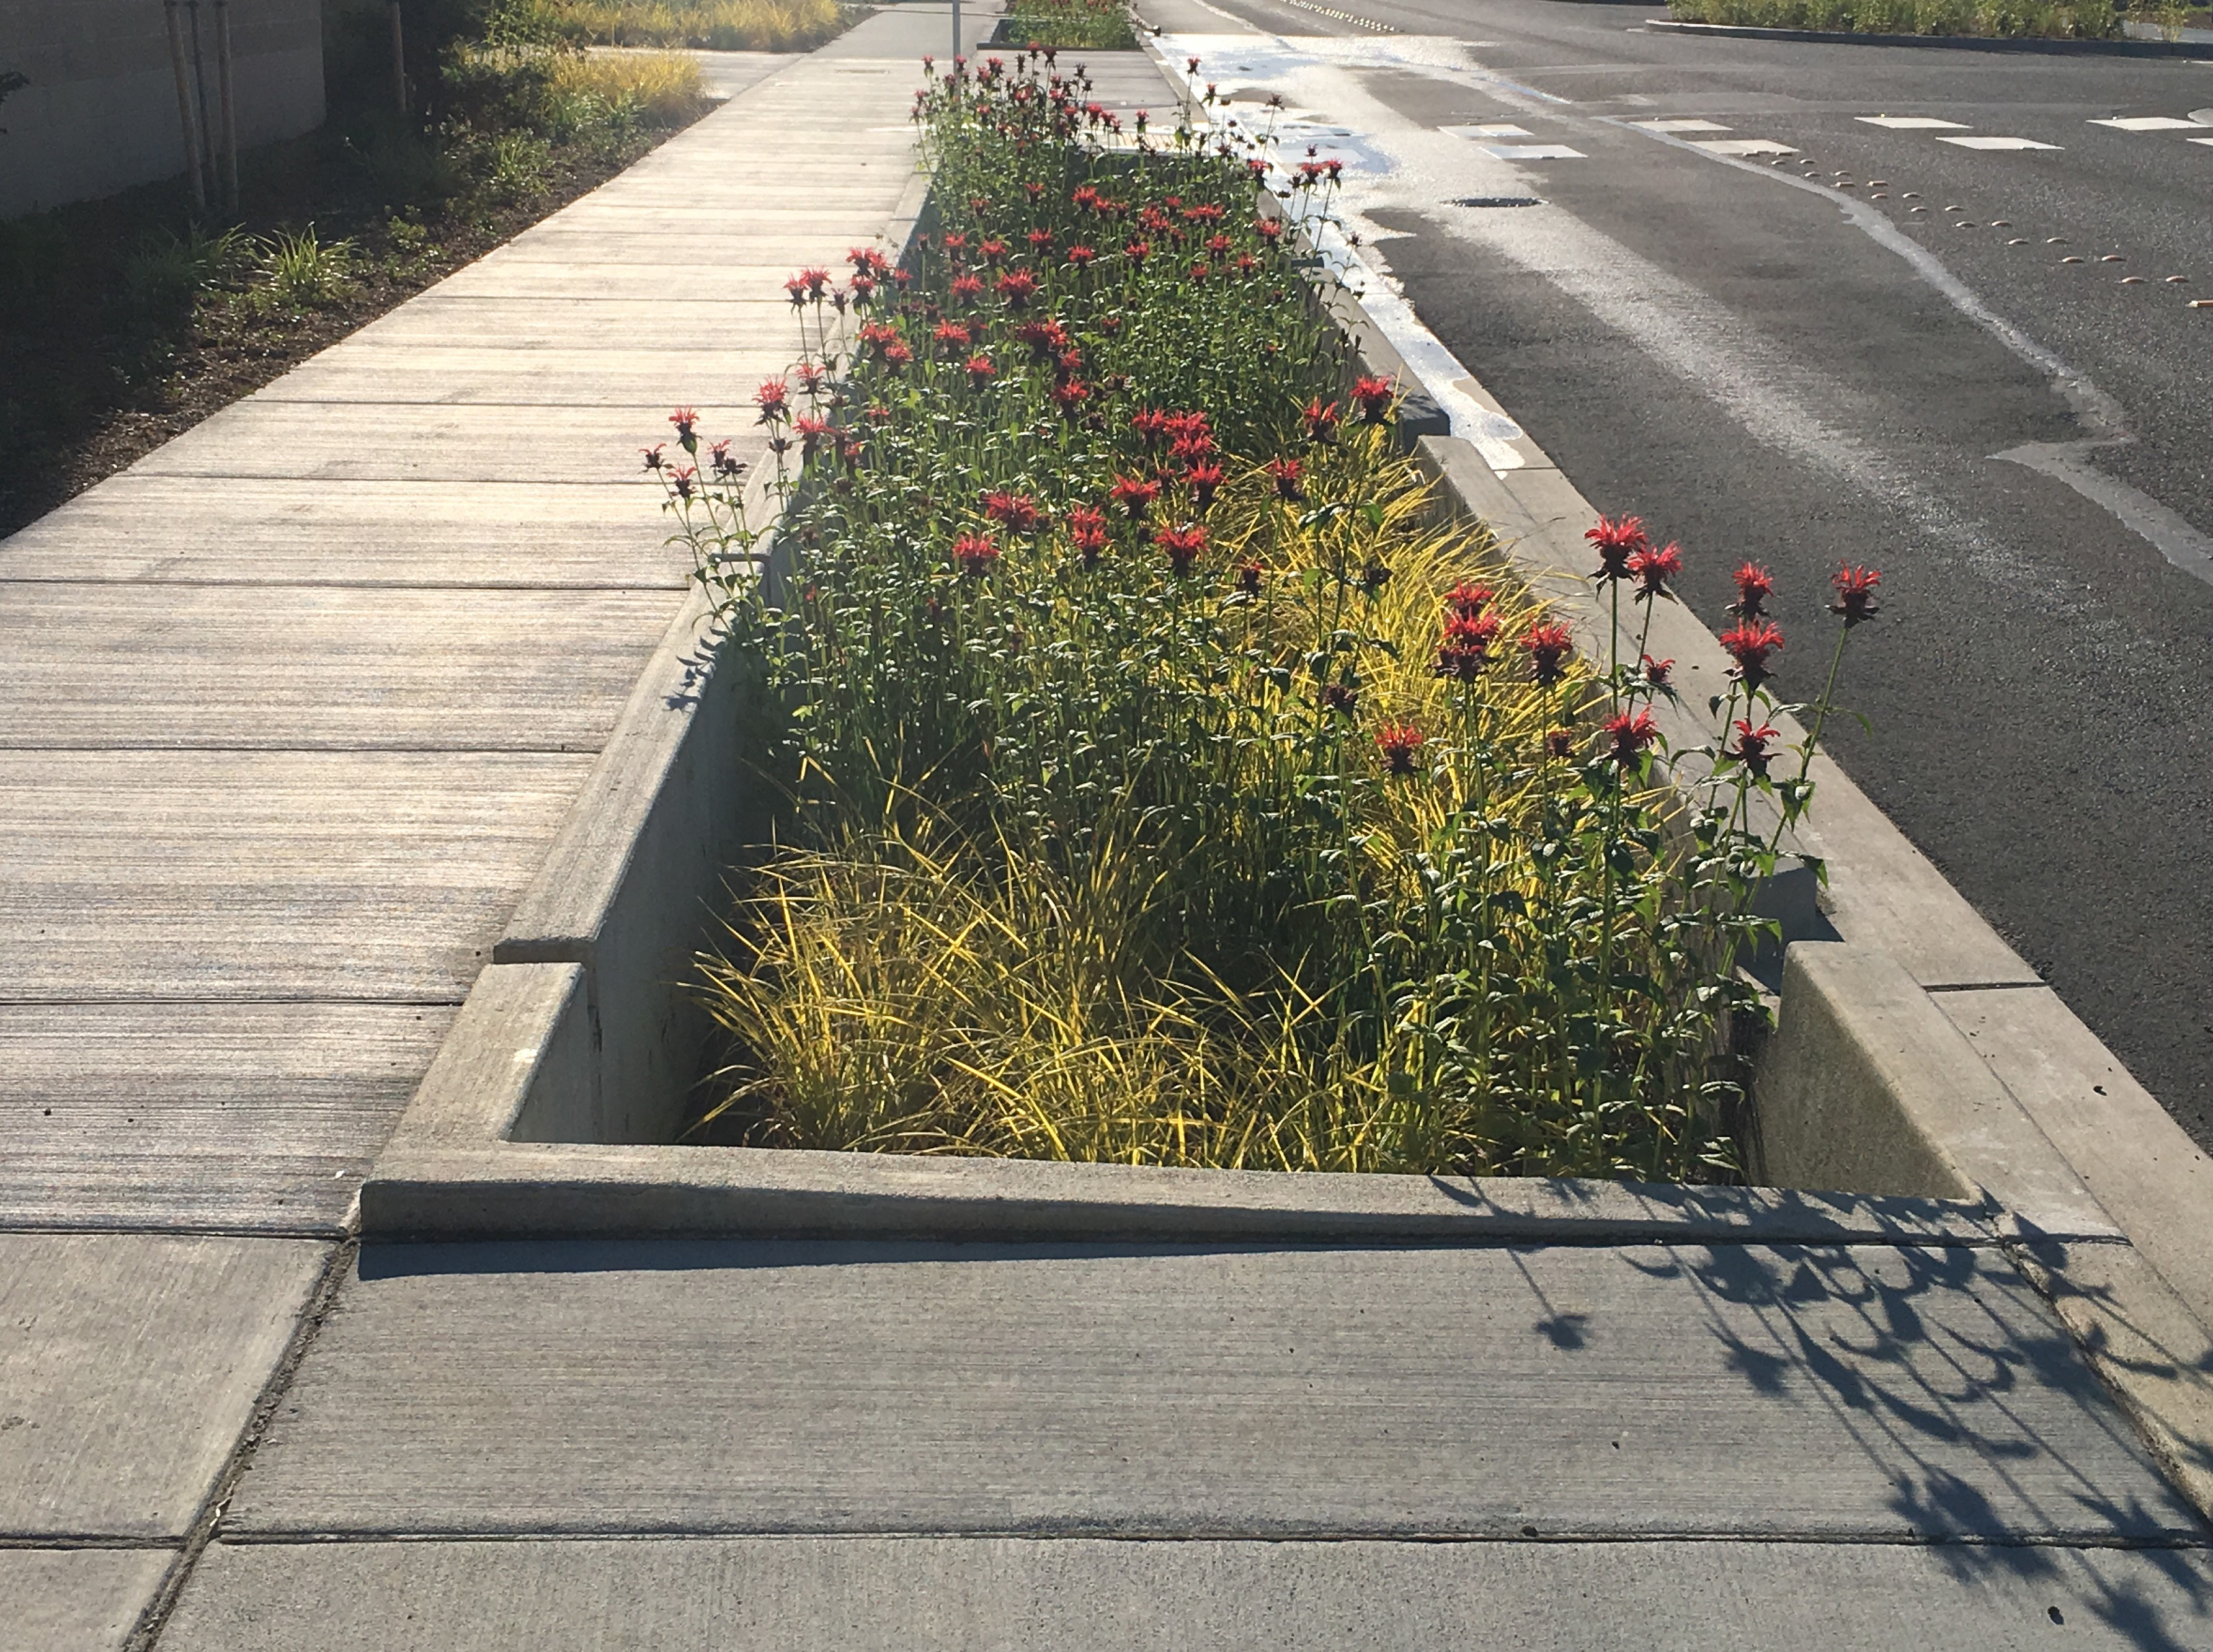 Photo of one of the bioretention cells on First Street in Marysville, with flowering plants in the concrete cell.